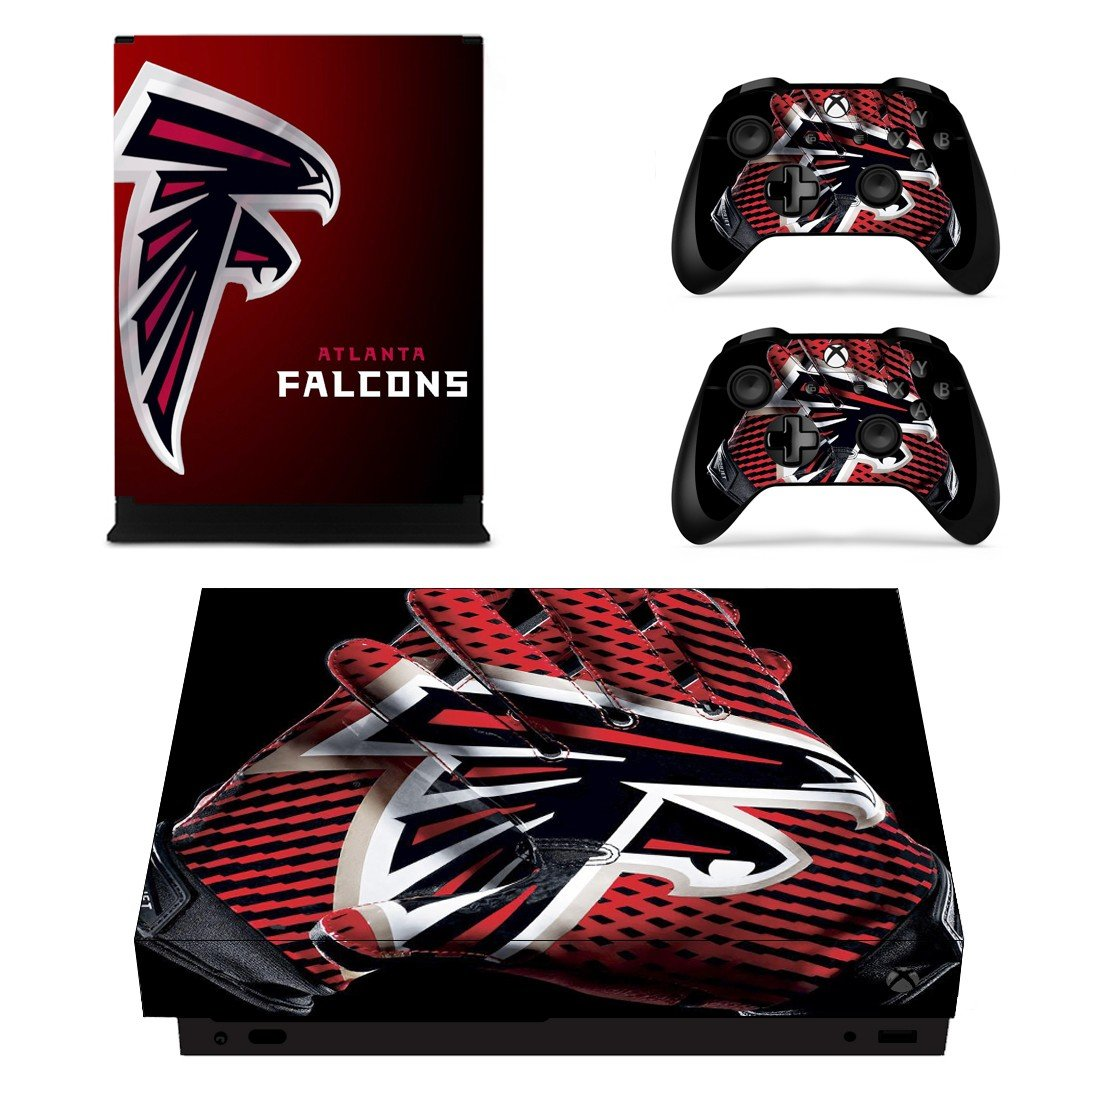 Atlanta Falcons decal skin sticker for Xbox One X console and controllers